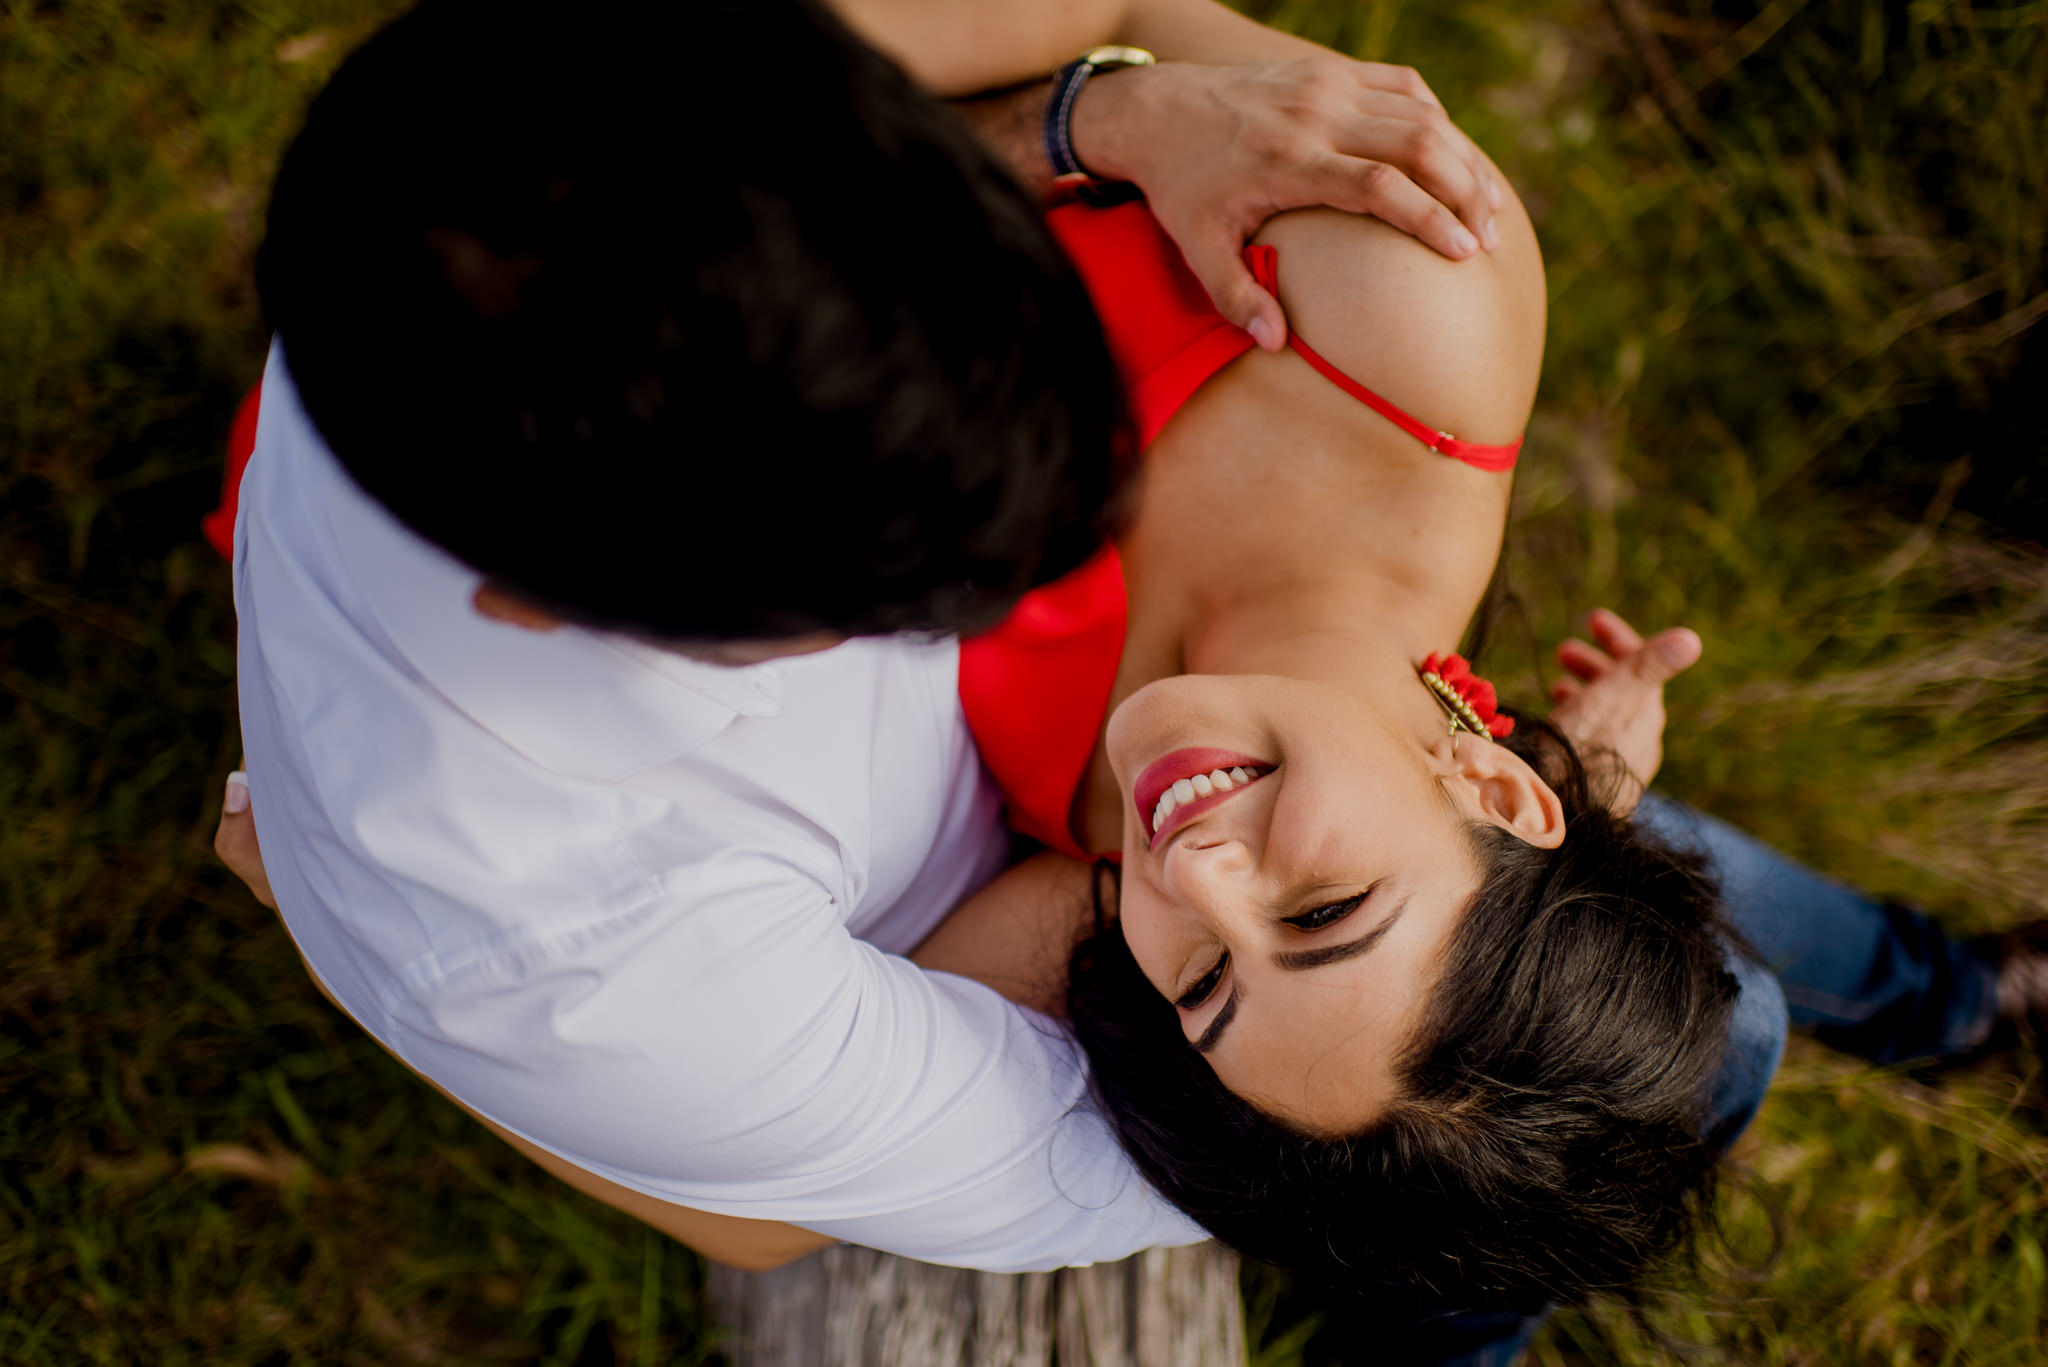 Bird's eye view of girl in red dress lying on boy's lap and looking up lovingly